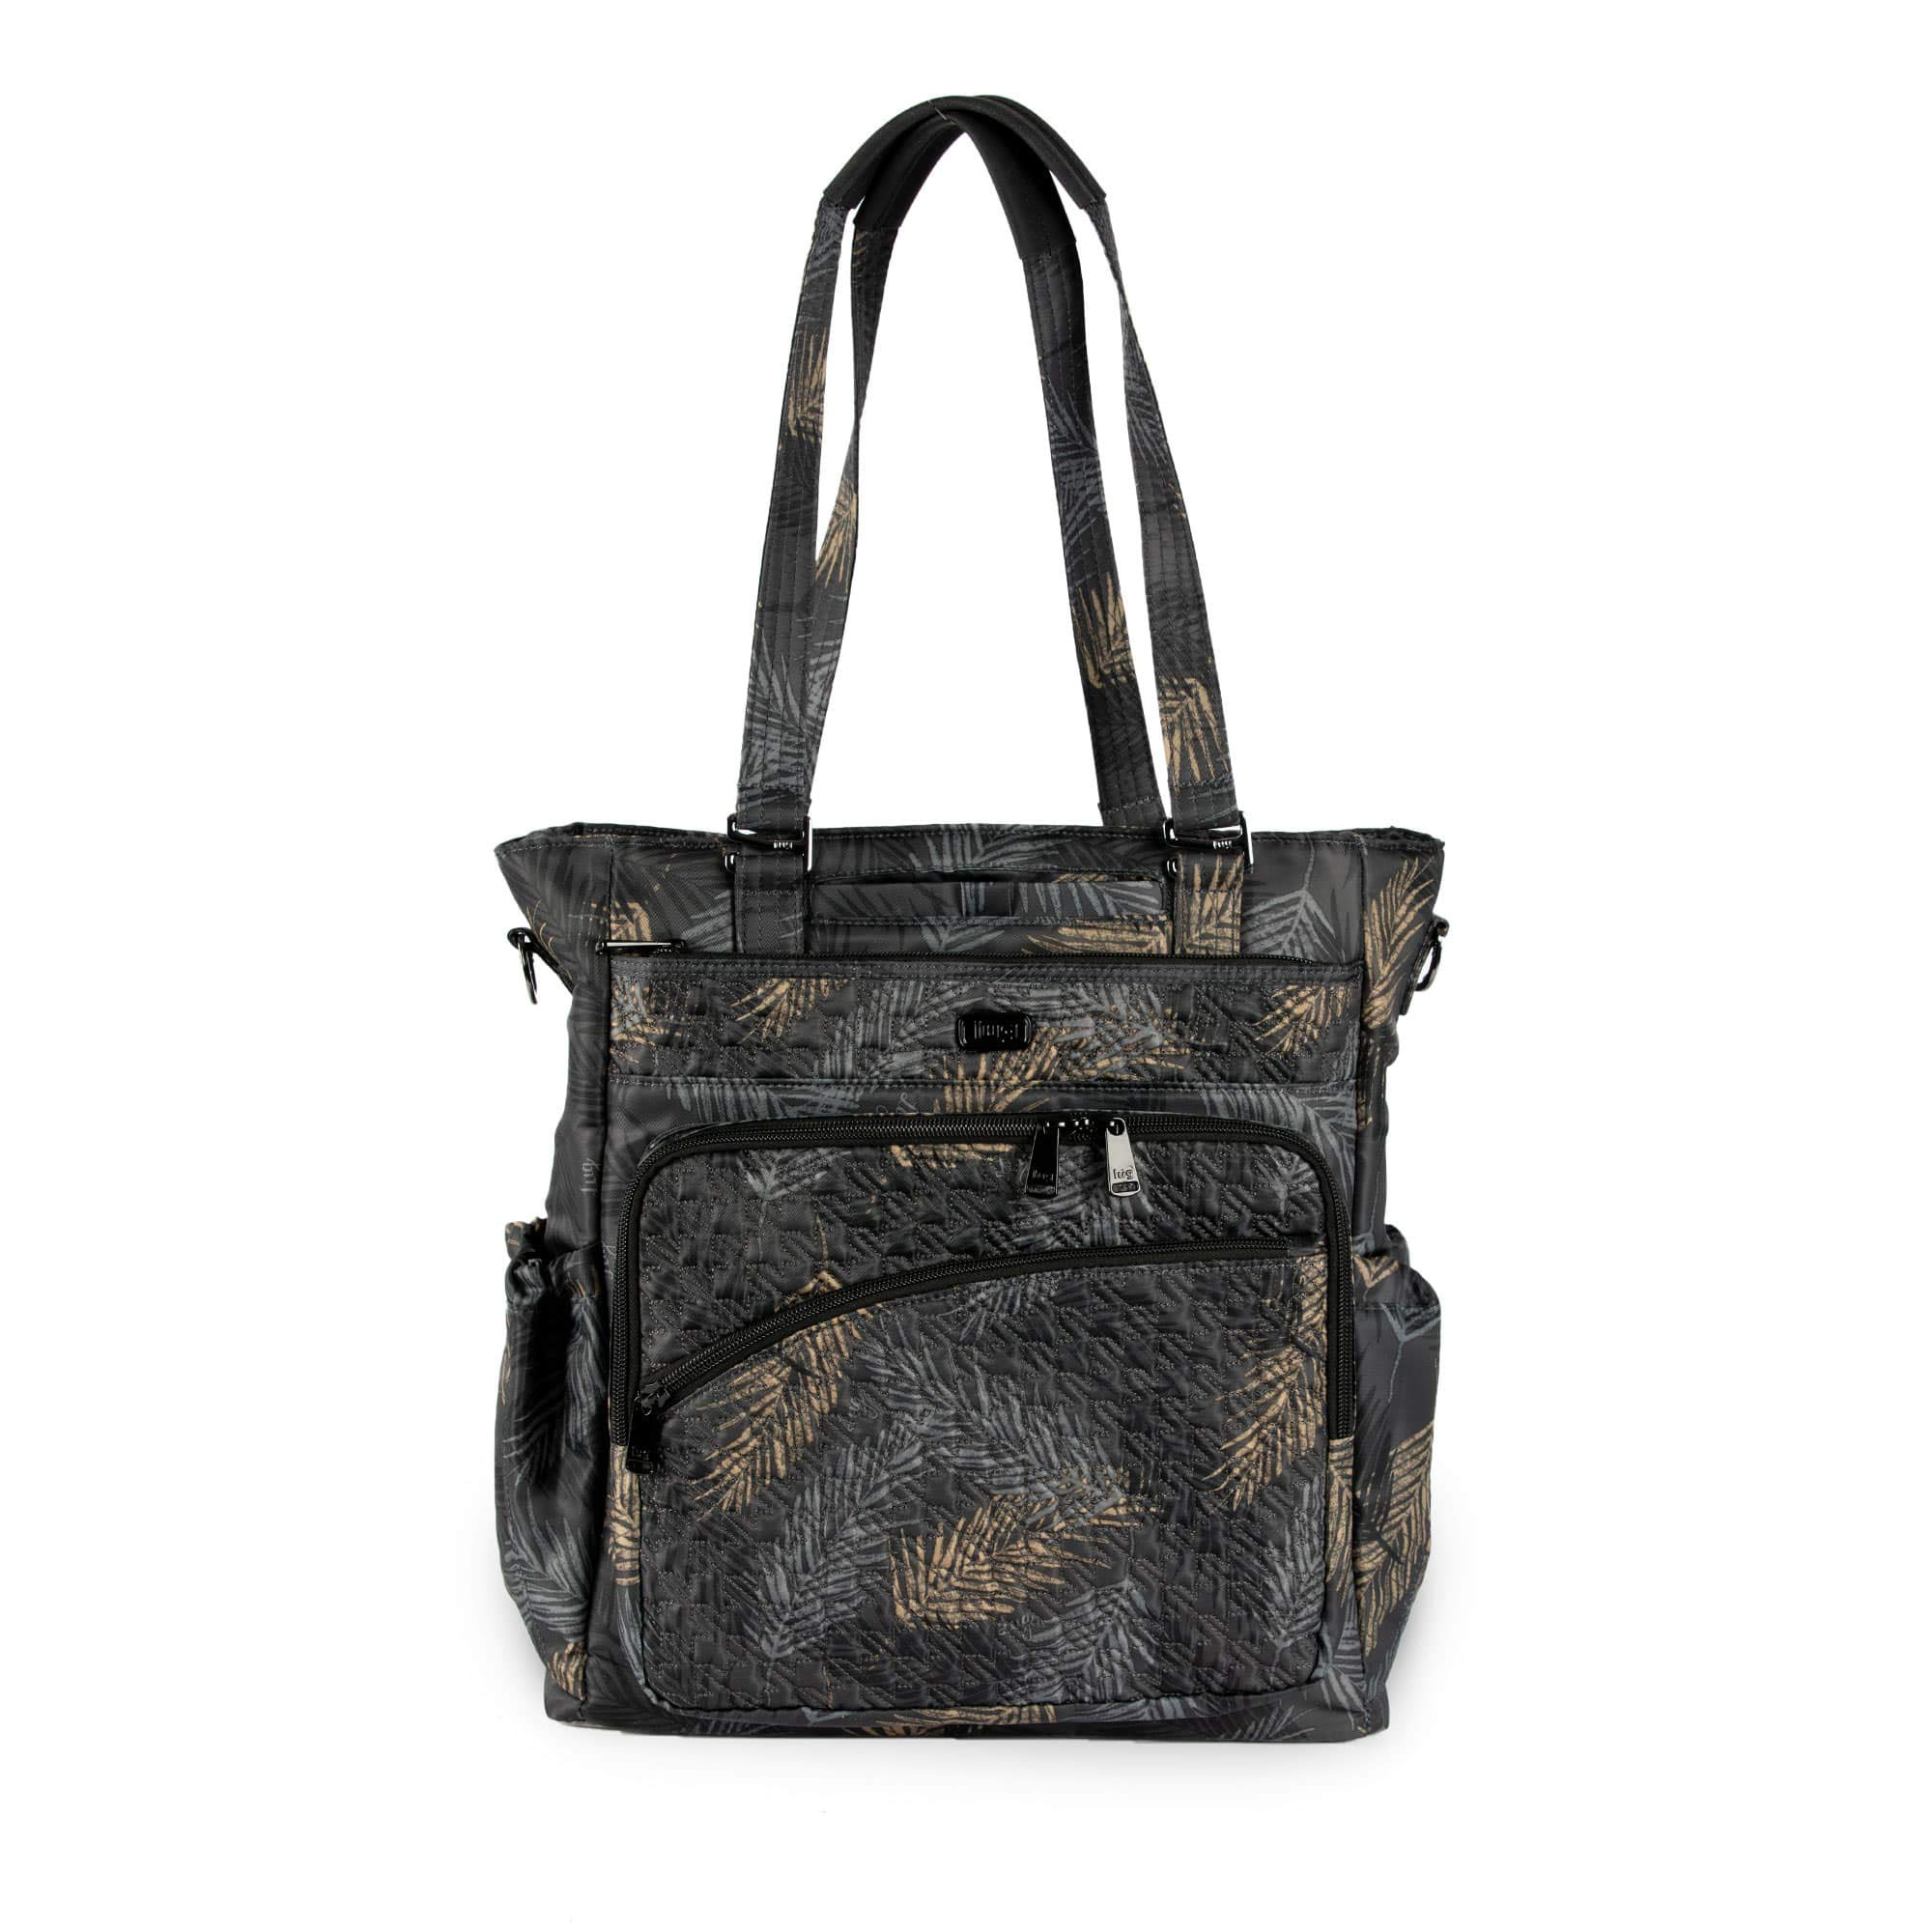 Lug Women's Ace 2 Convertible Travel Tote, Tropical Grey, One Size